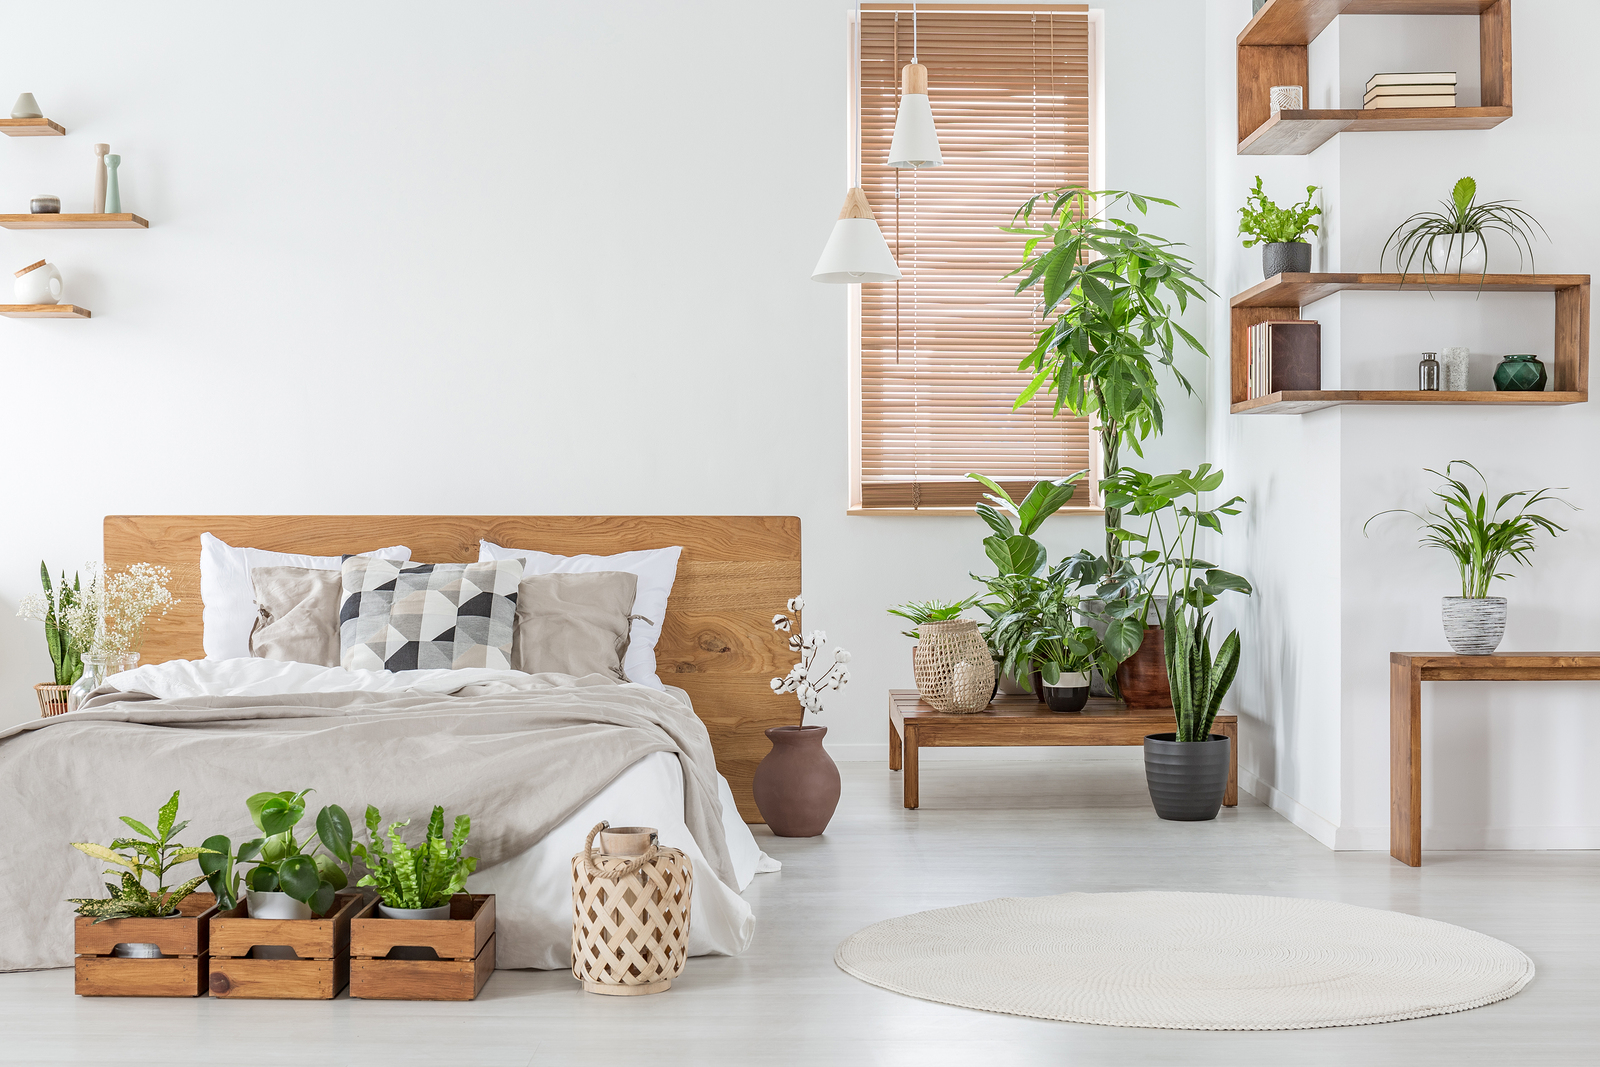 5 things in your bedroom that can improve your sleep